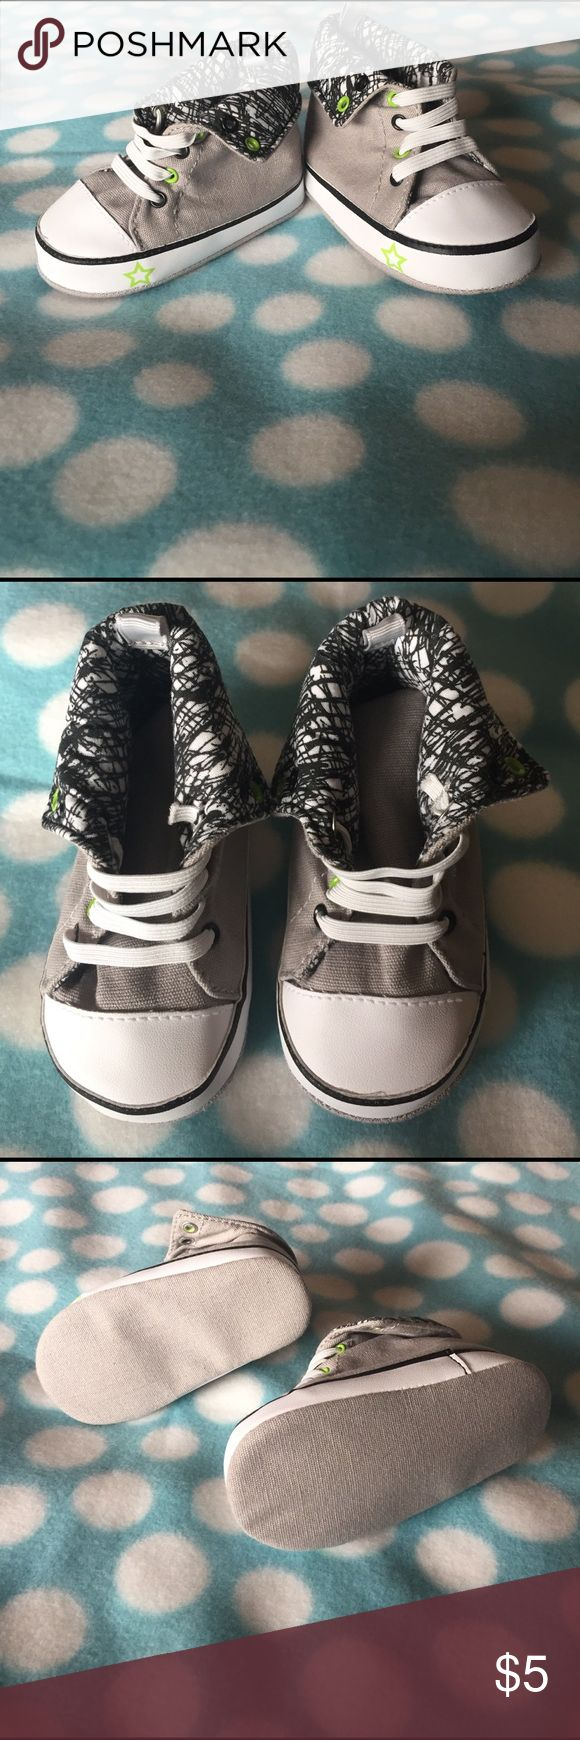 9-12 month converse style crib shoes They are not converse brand, but they resemble the style. Never worn has lime green and black detailing  with a gray canvas. Flip down high-tops. super cute just never got around to having him wear them. stepping stones Shoes Baby & Walker